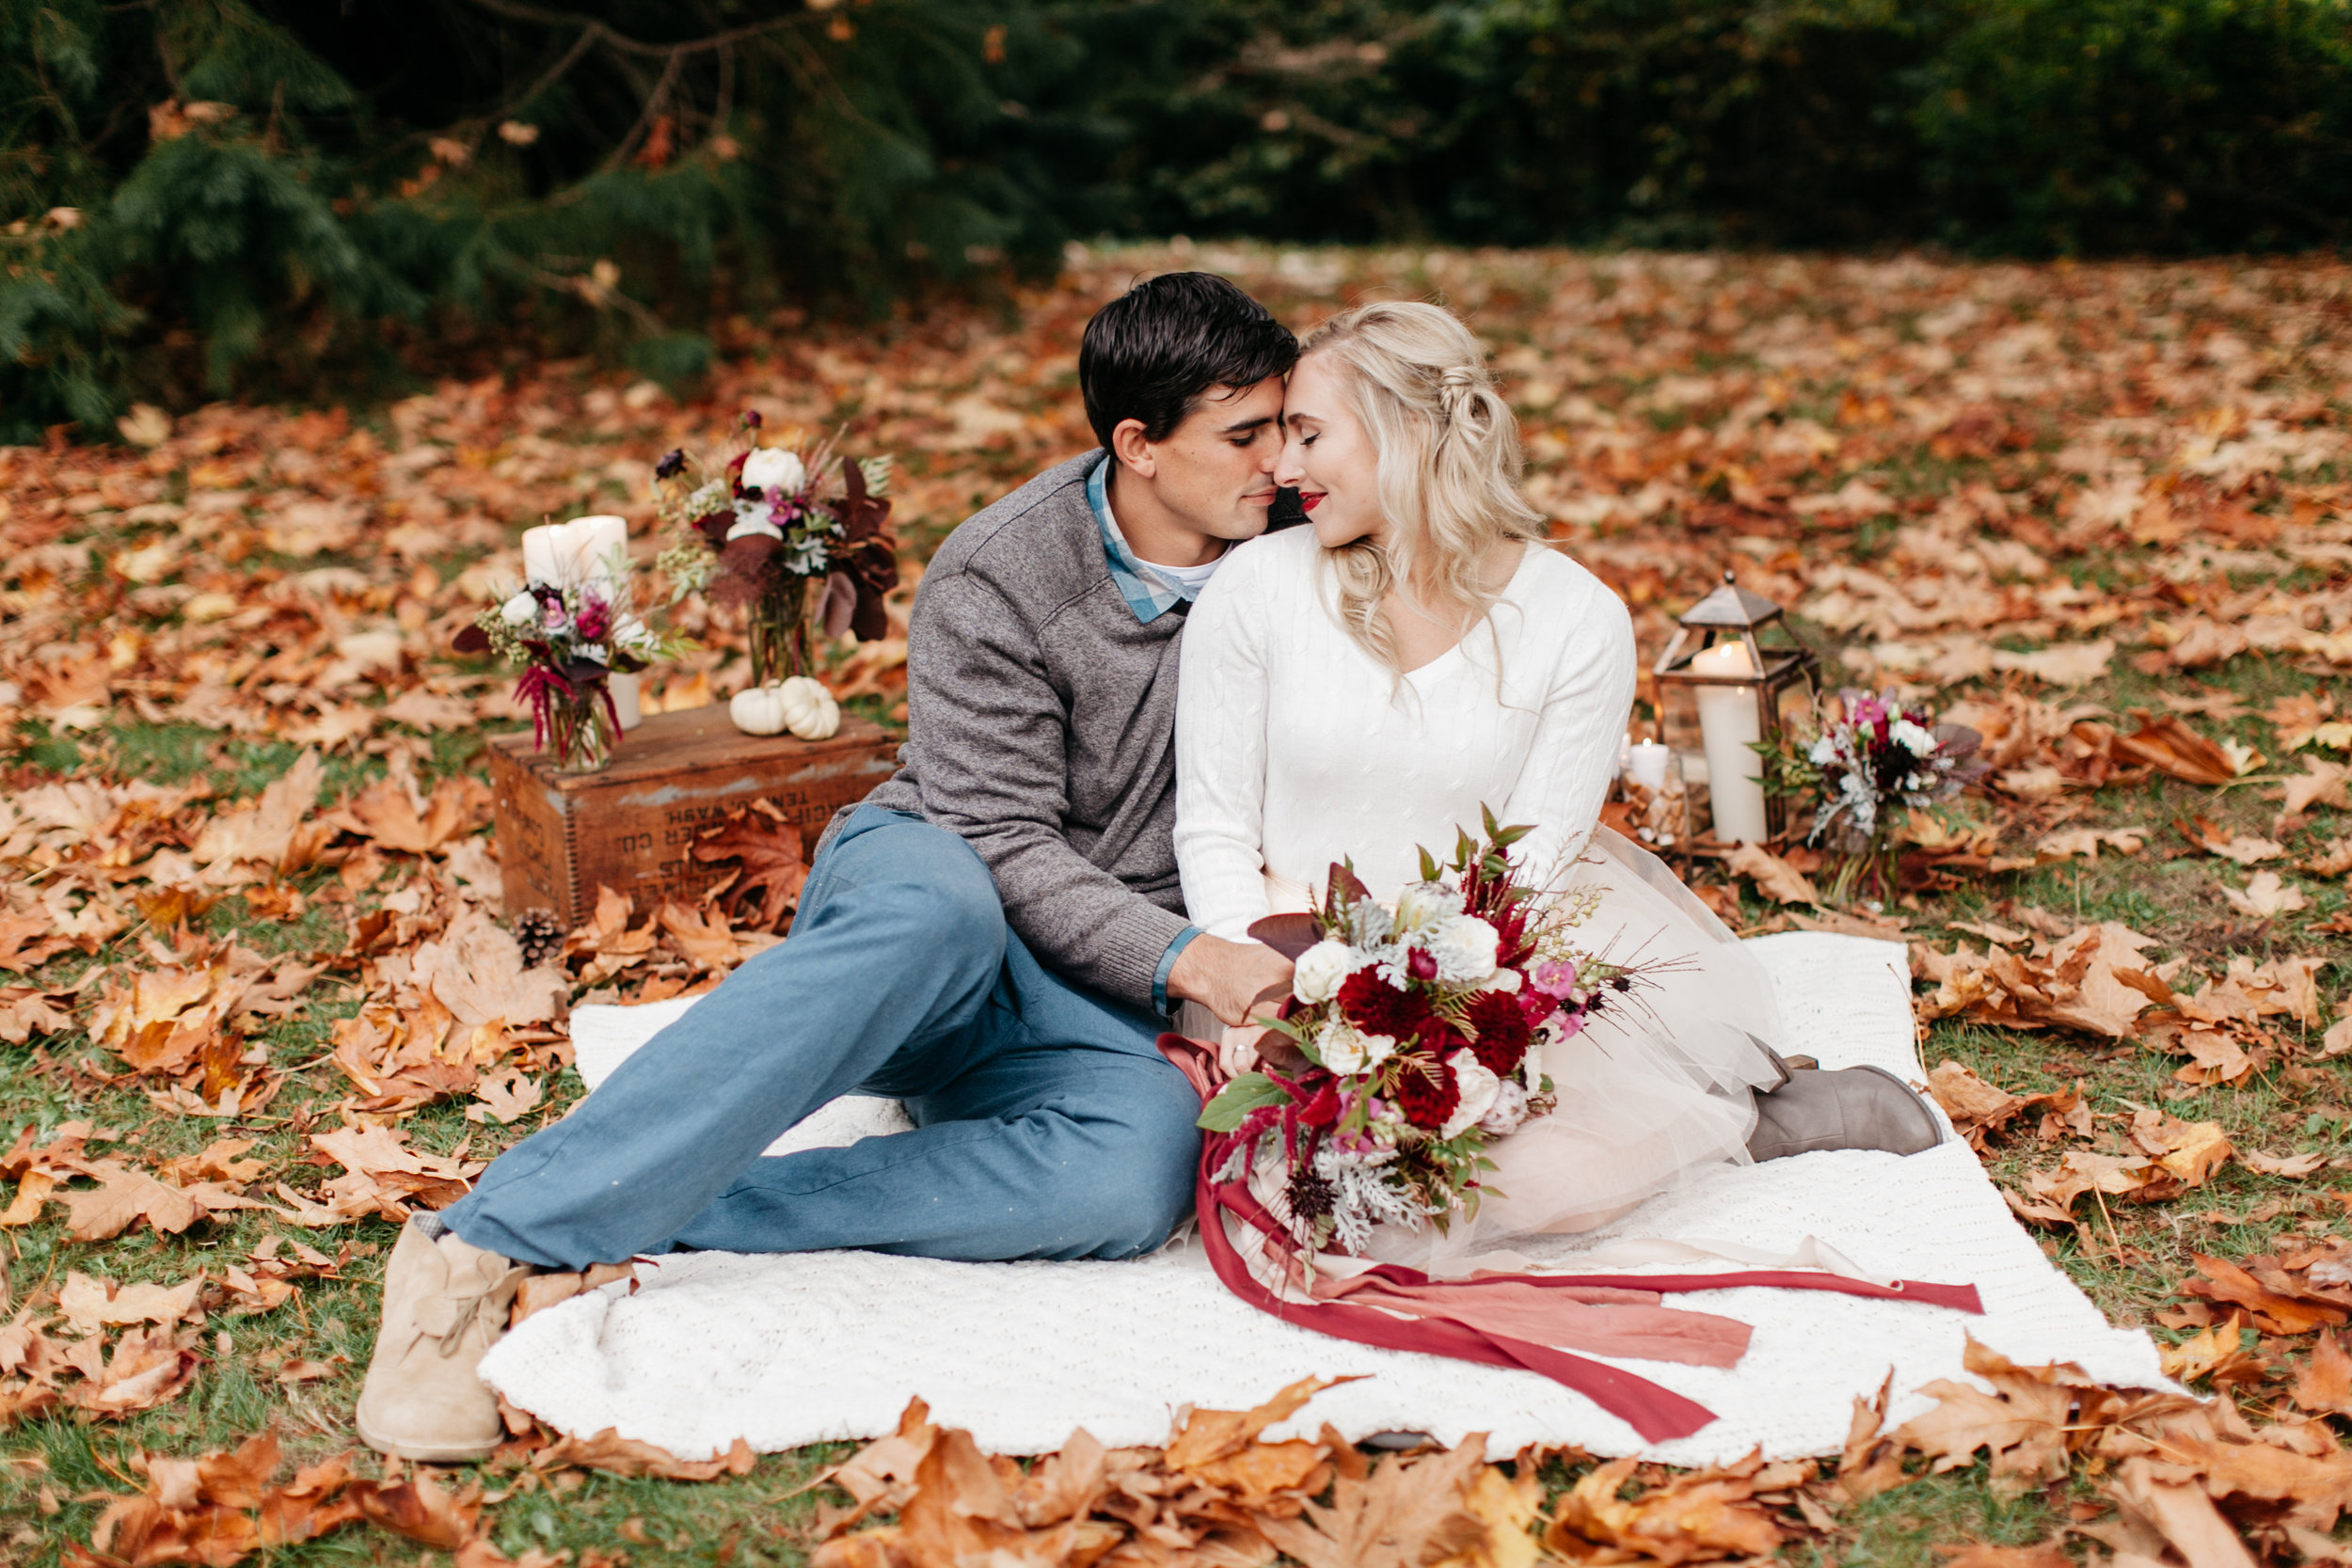 Autumn Styled Engagement Session-Engagement Session-0083.jpg